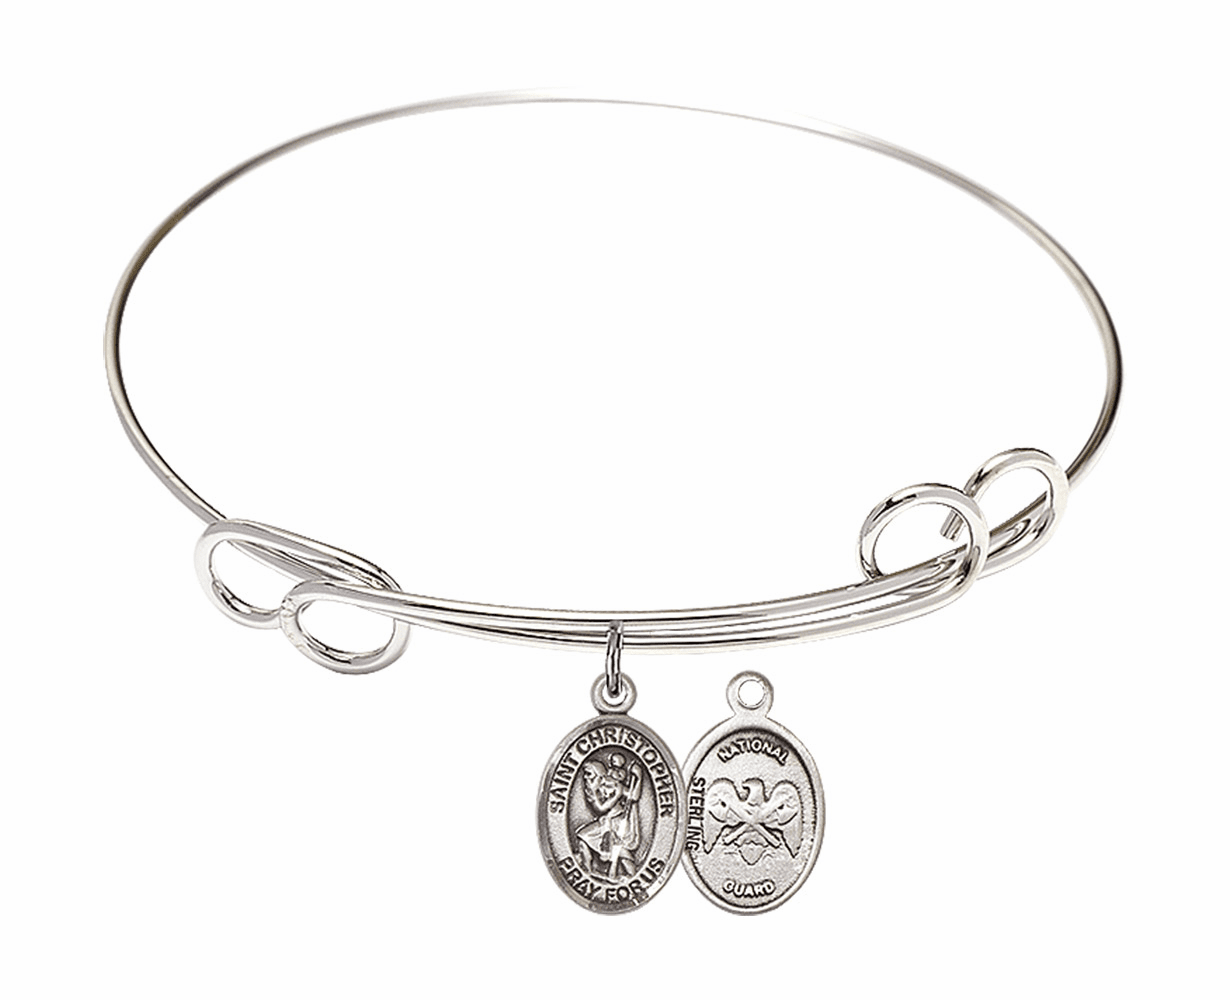 Round Loop St Christopher National Guard Bangle Charm Bracelet by Bliss